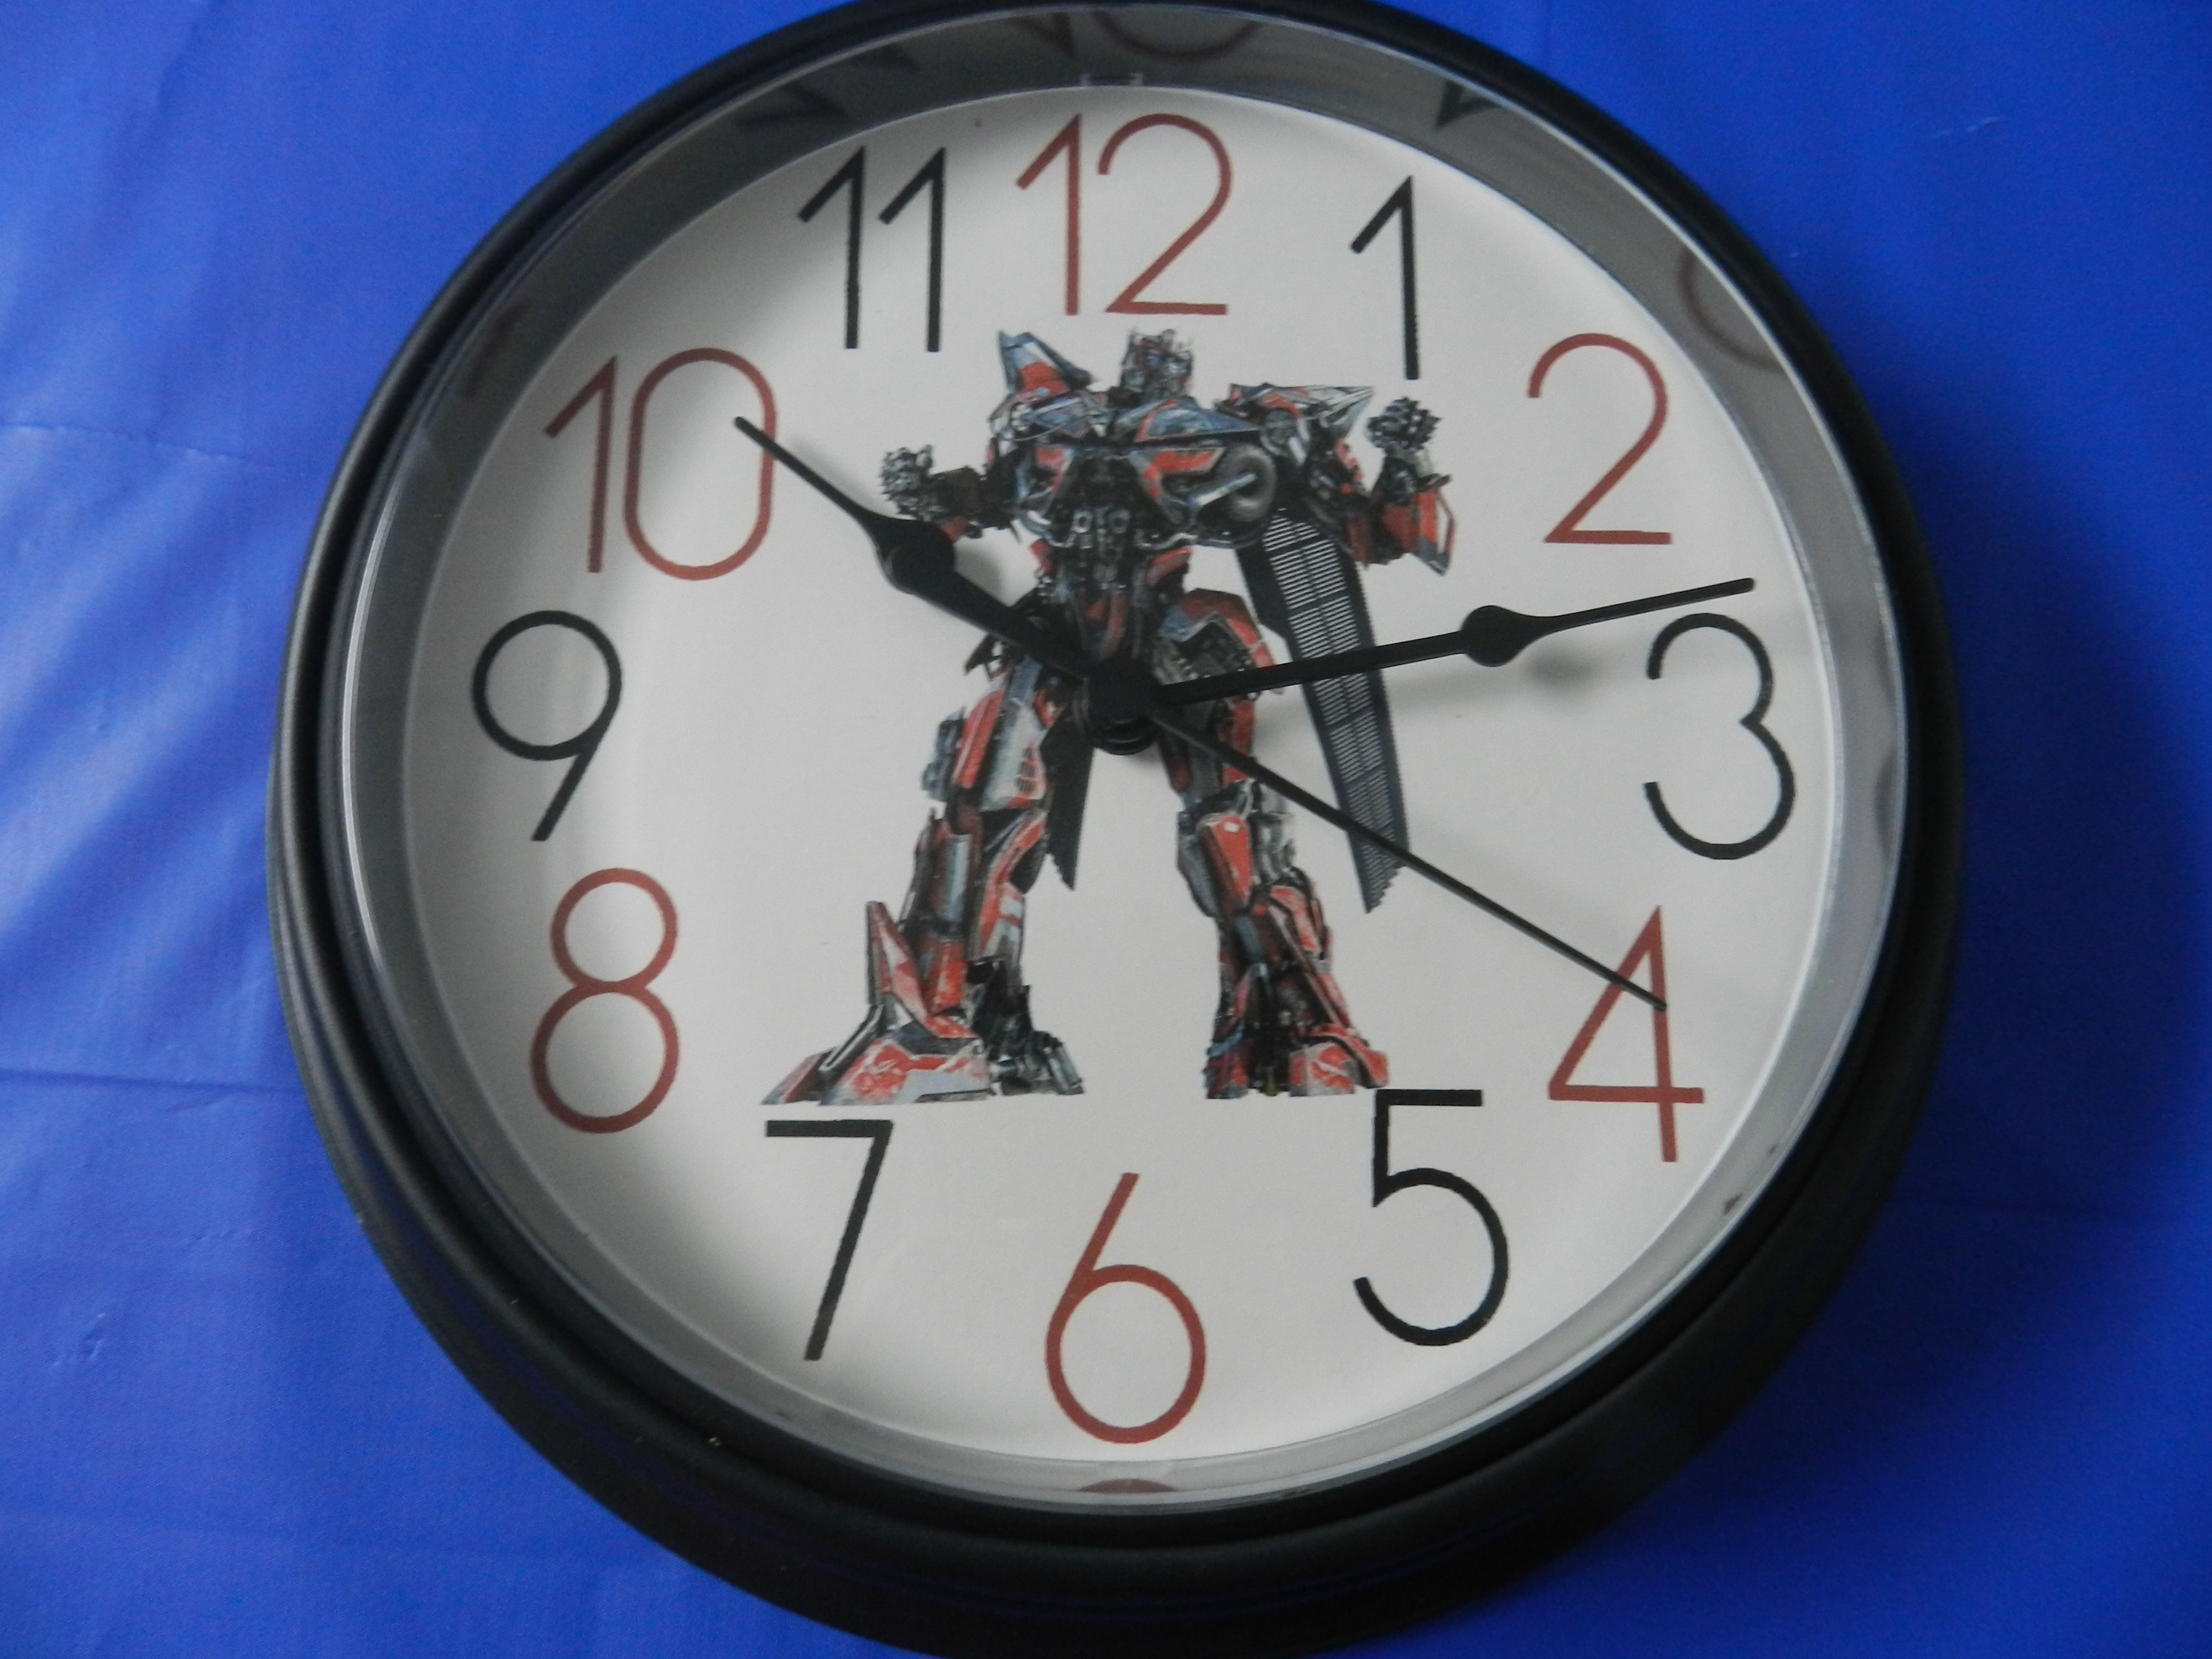 Transformers wall decor clock 1200 transformers pinterest transformers wall decor clock 1200 amipublicfo Choice Image